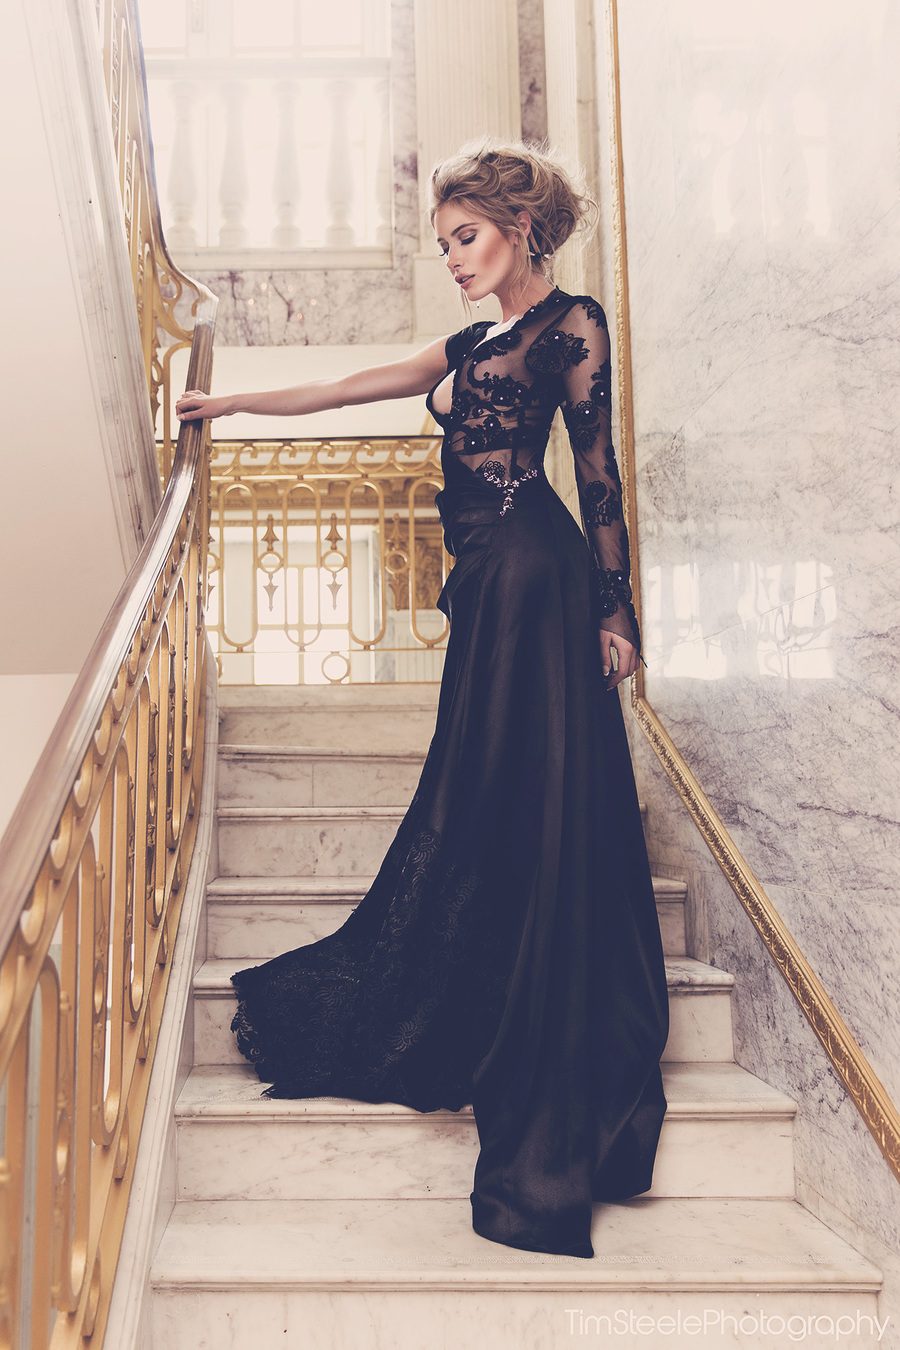 So elegant... / Photography by Tim Steele Photography, Model *V* / Uploaded 27th July 2014 @ 05:10 PM